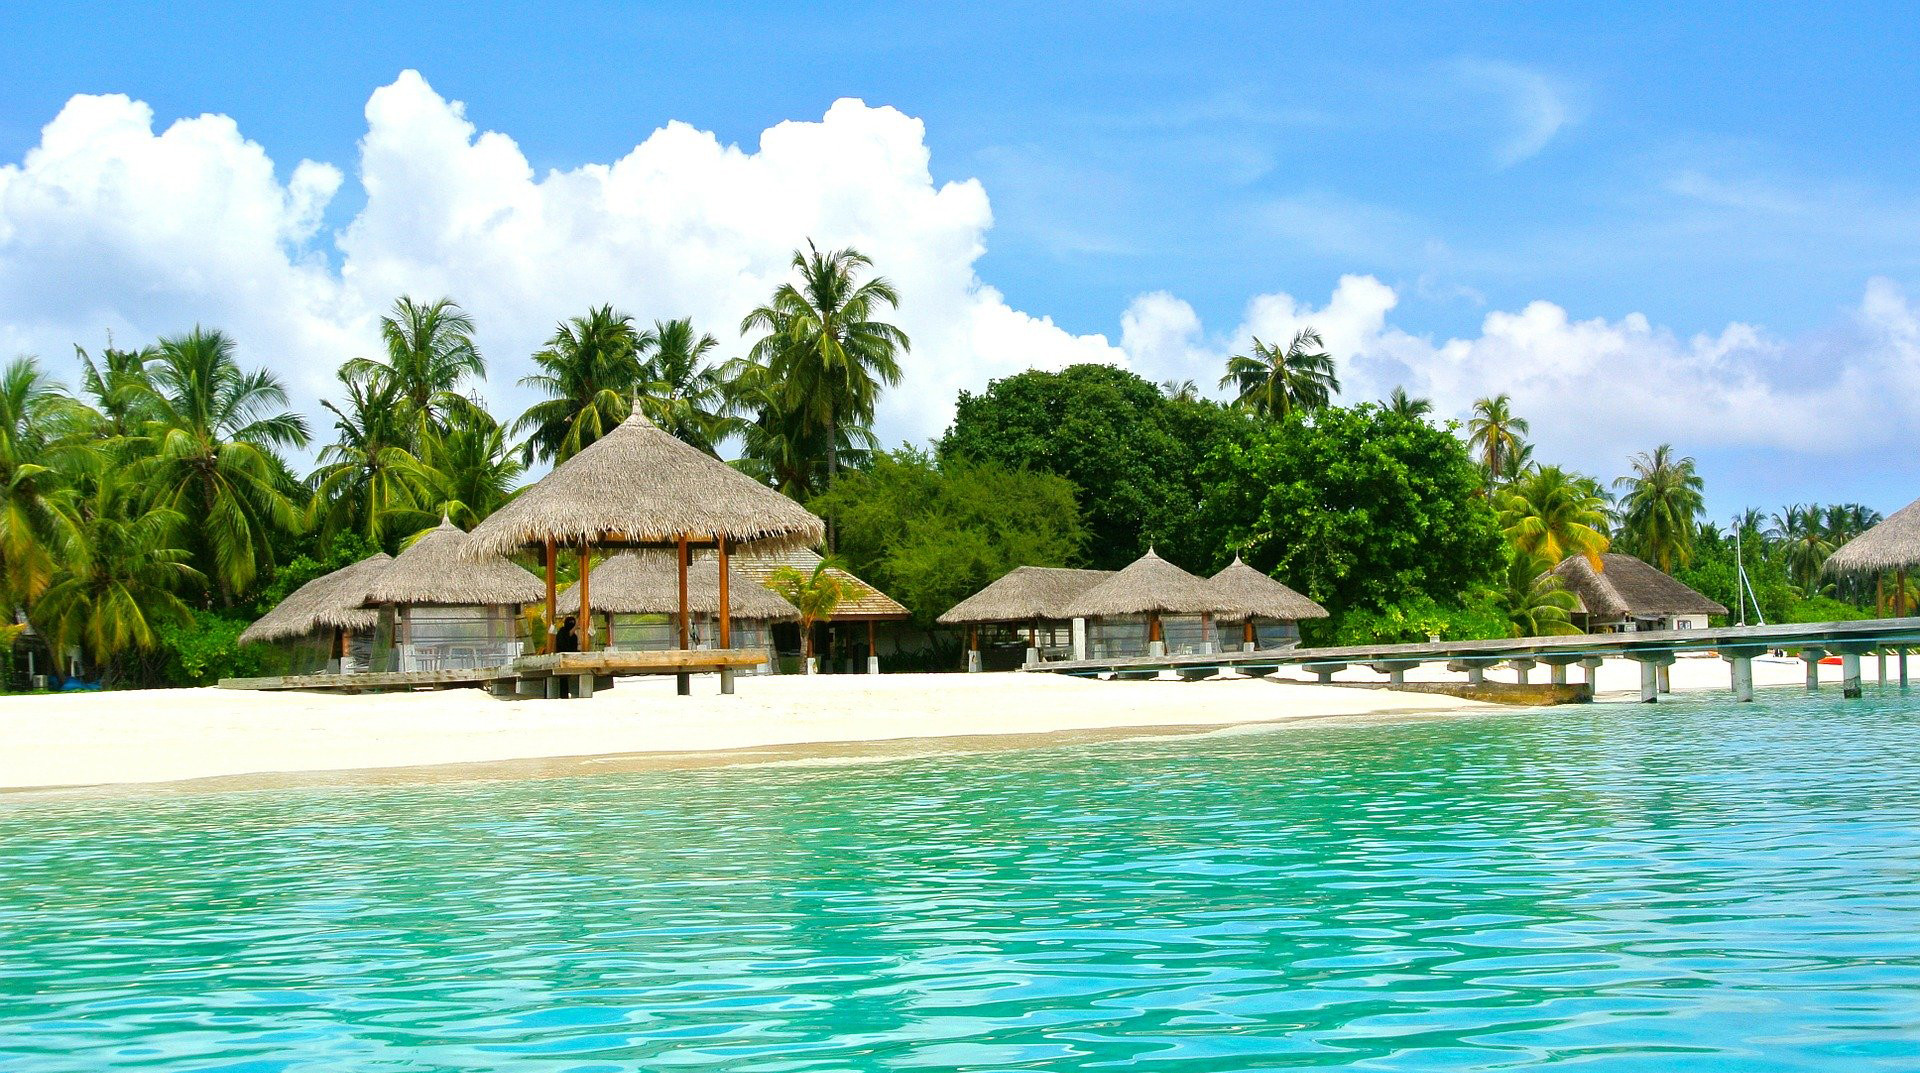 news-main-maldives-to-reopen-borders-to-tourists-from-july-15-2020.1593089513.jpg